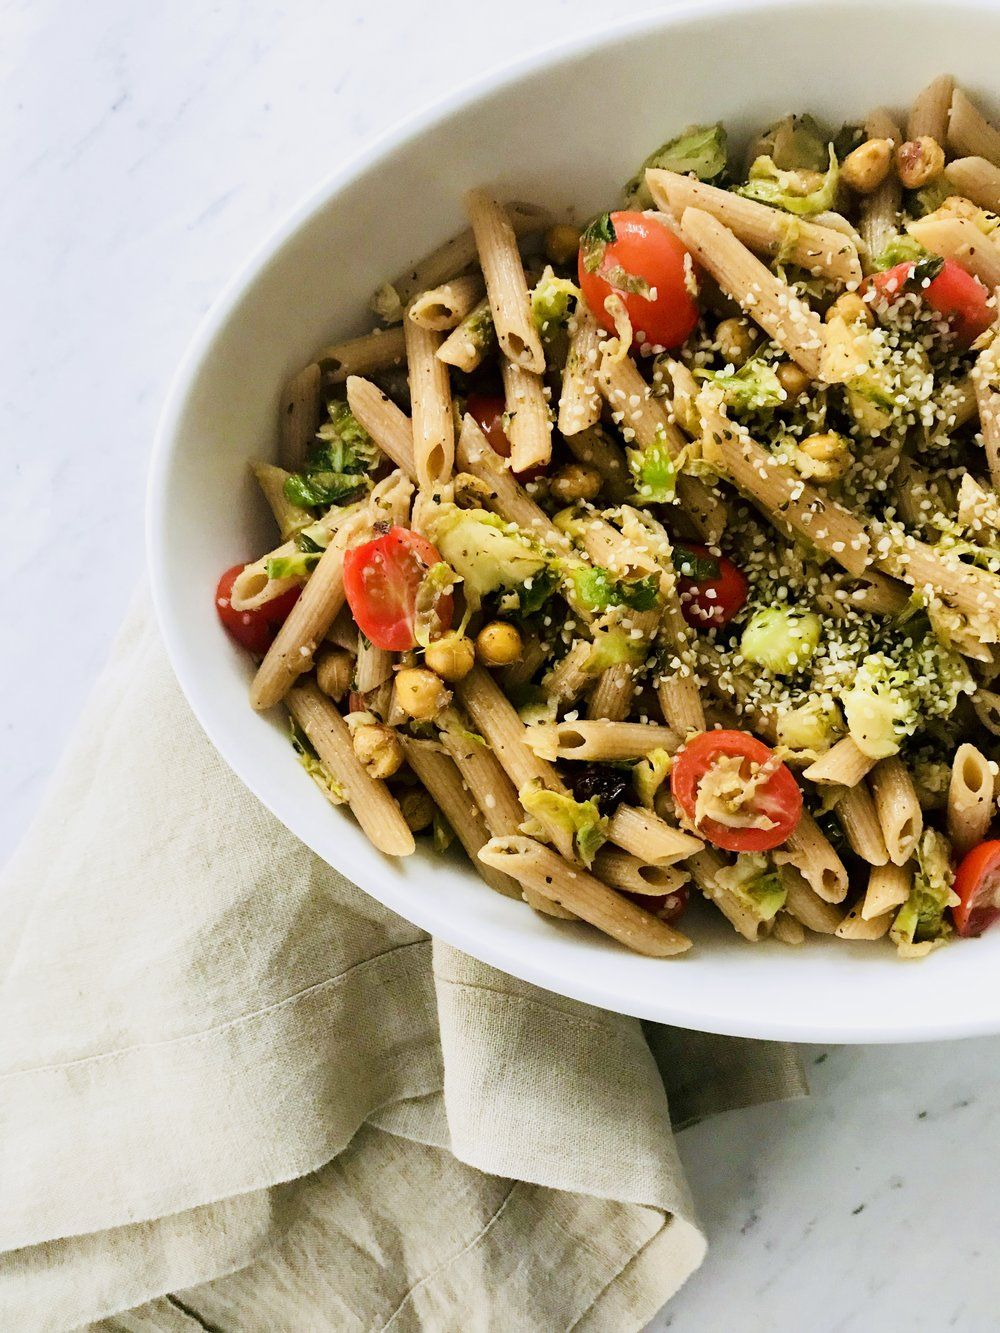 Pasta With Brussel Sprouts Crunchy Chickpeas Amp Hemp Seeds